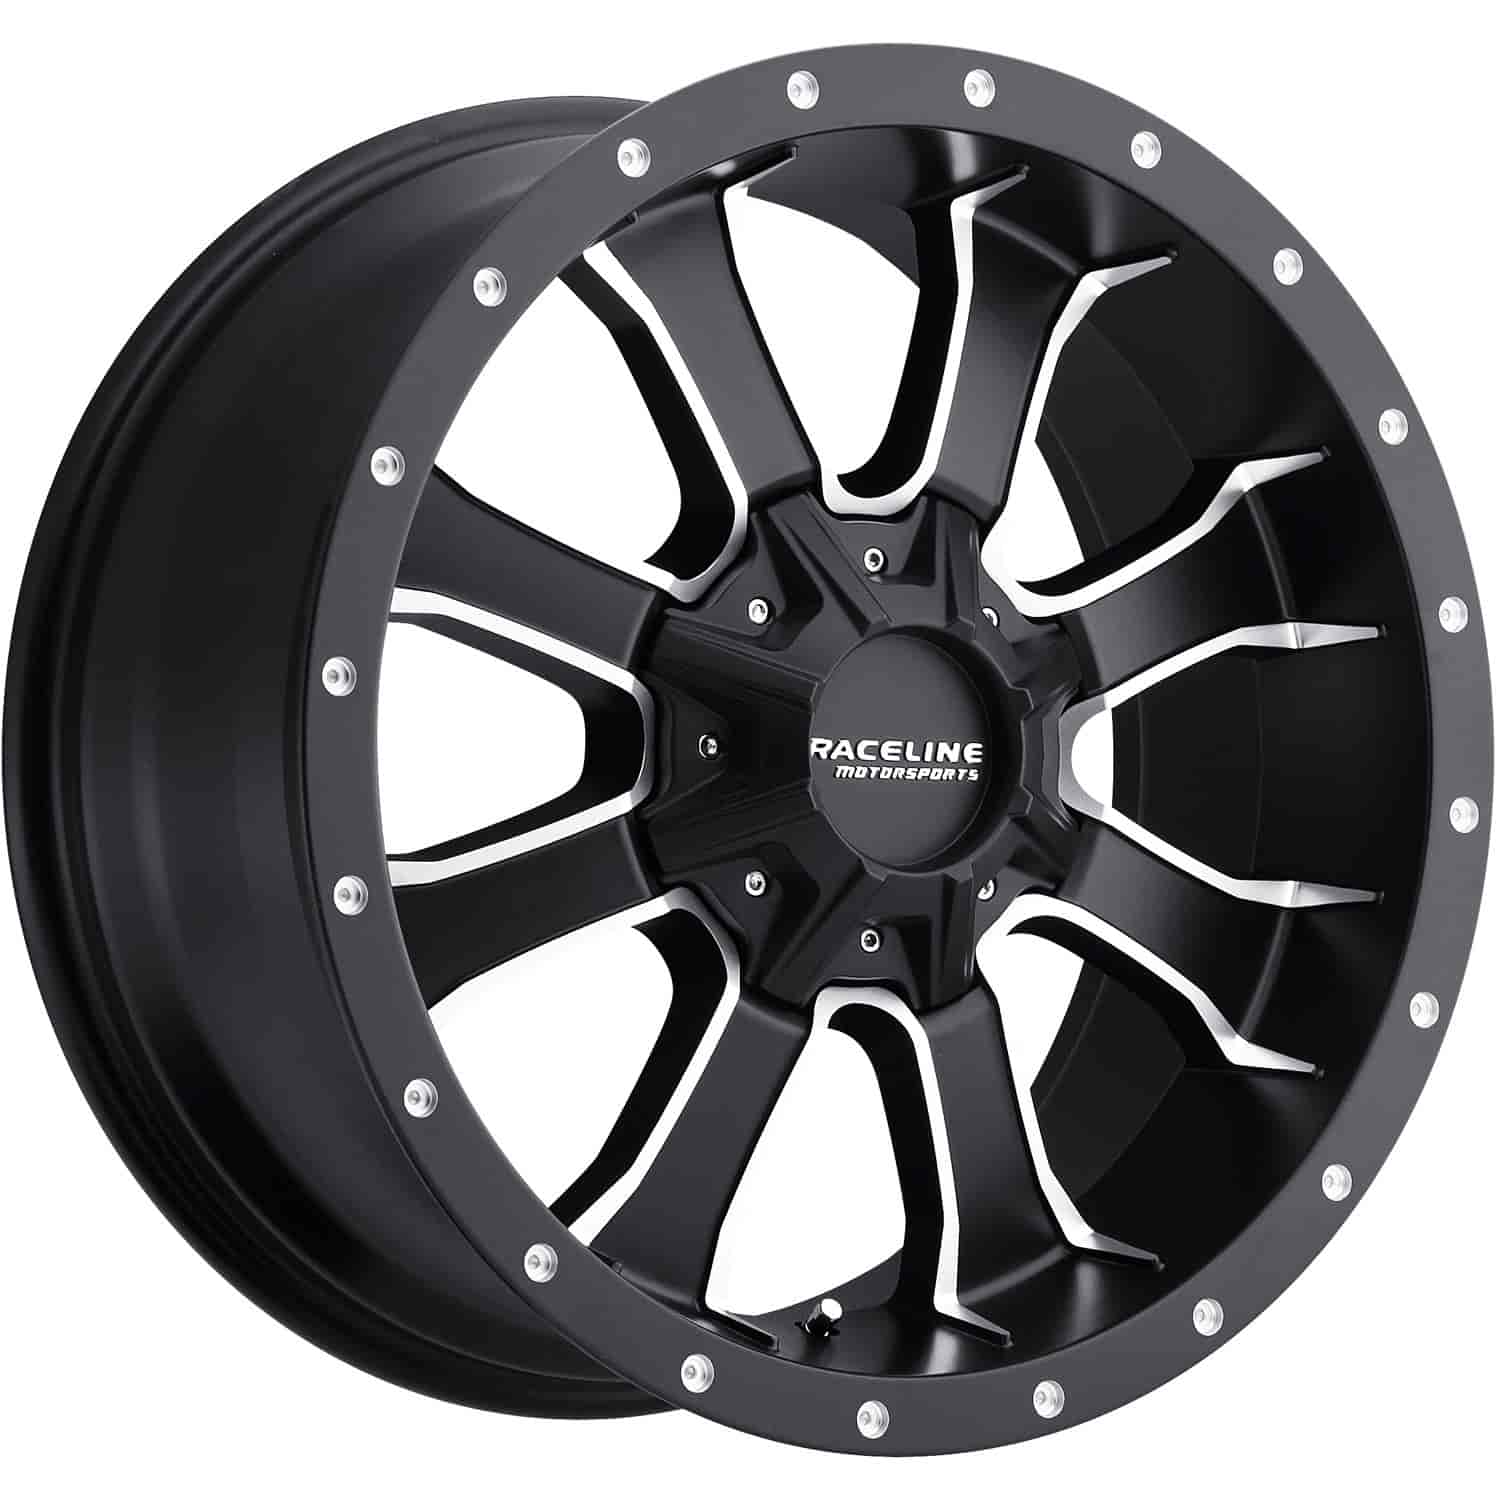 Raceline Wheels 927M-7907018